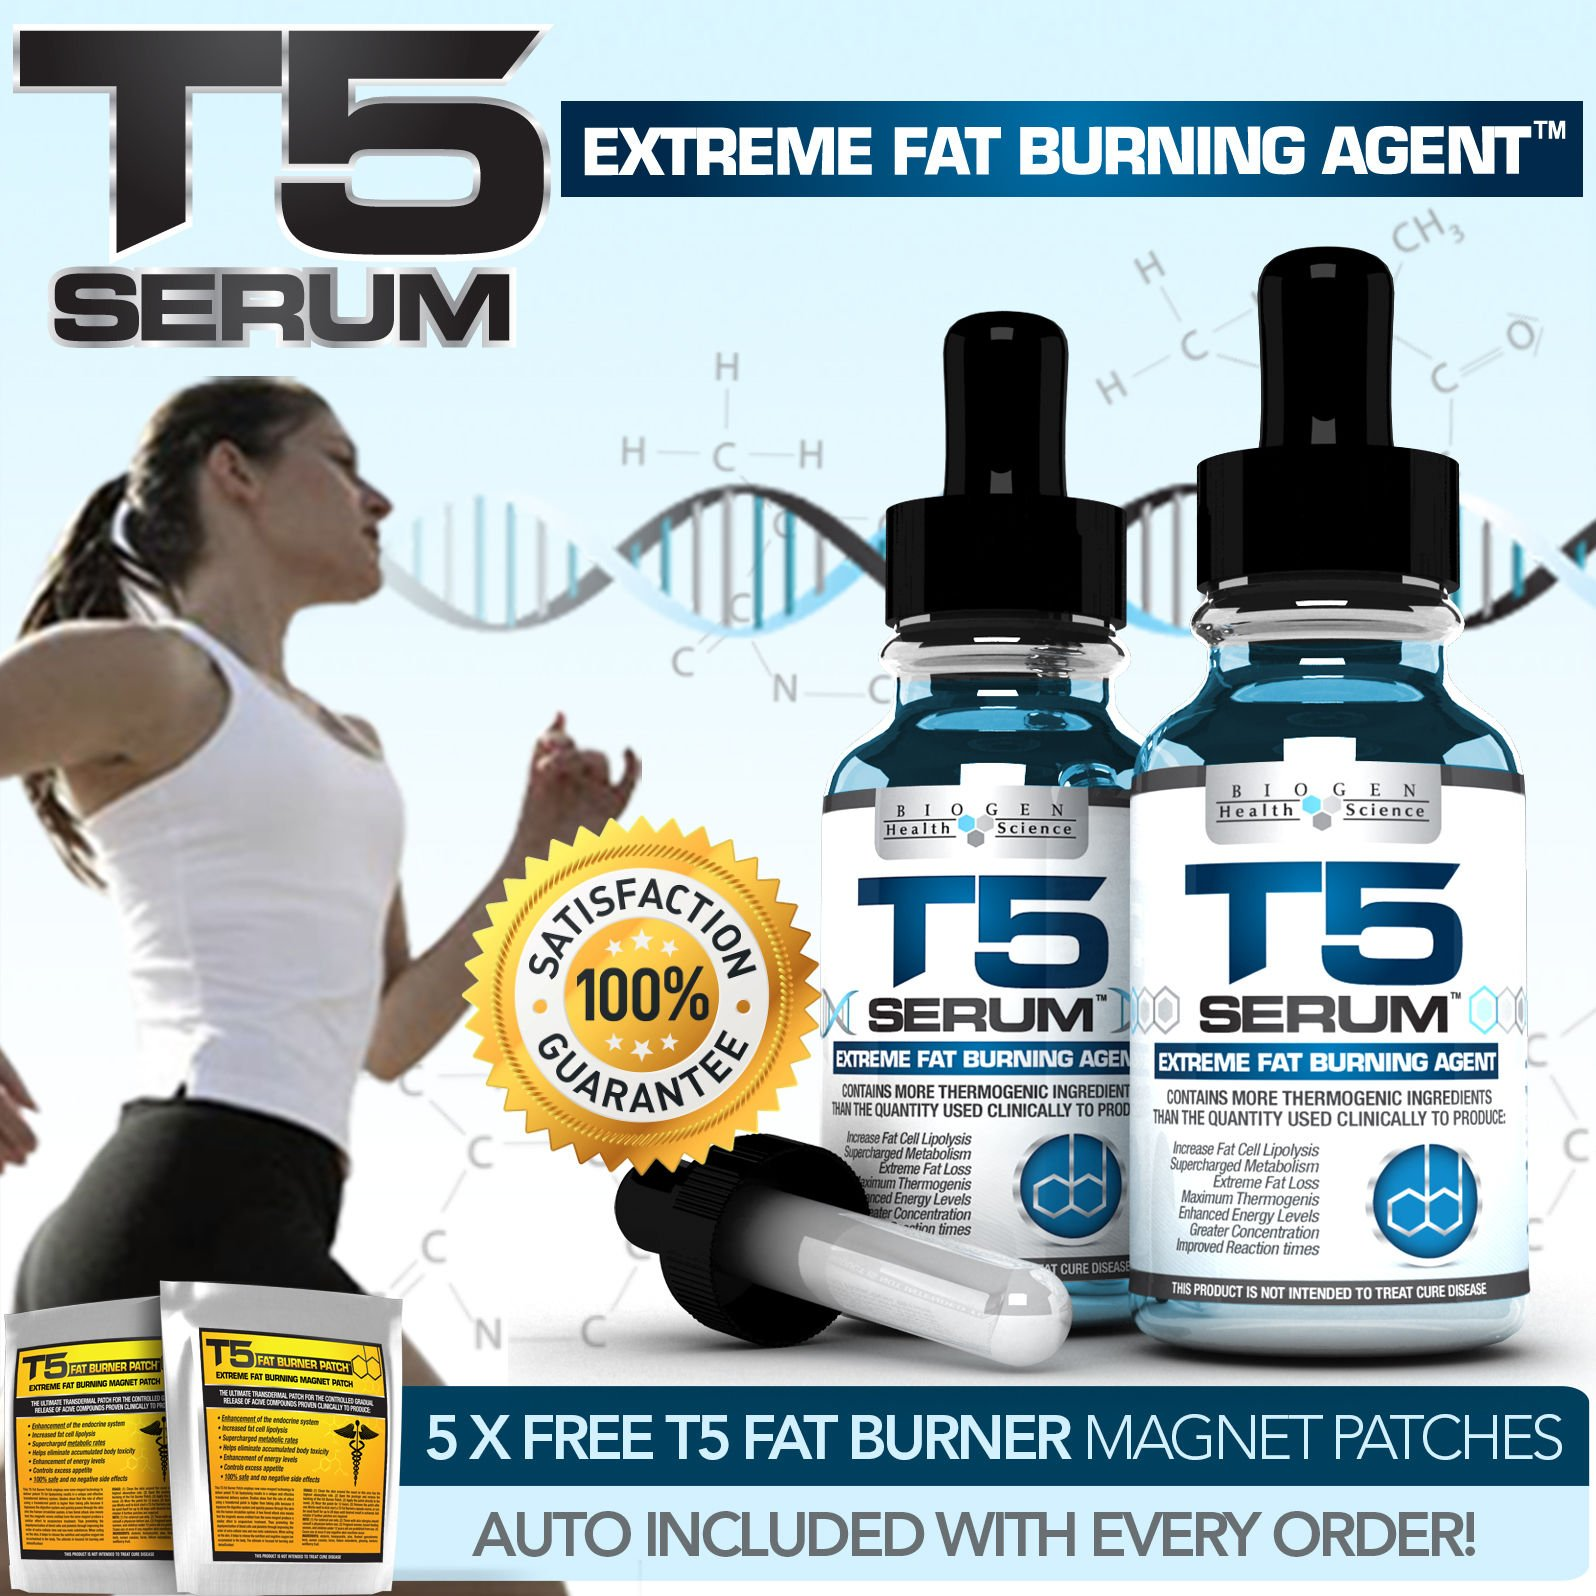 X2 Biogen T5 FAT Burners Serum Xt- Extra Strong Diet /Slimming Pills Alternative Slender Product